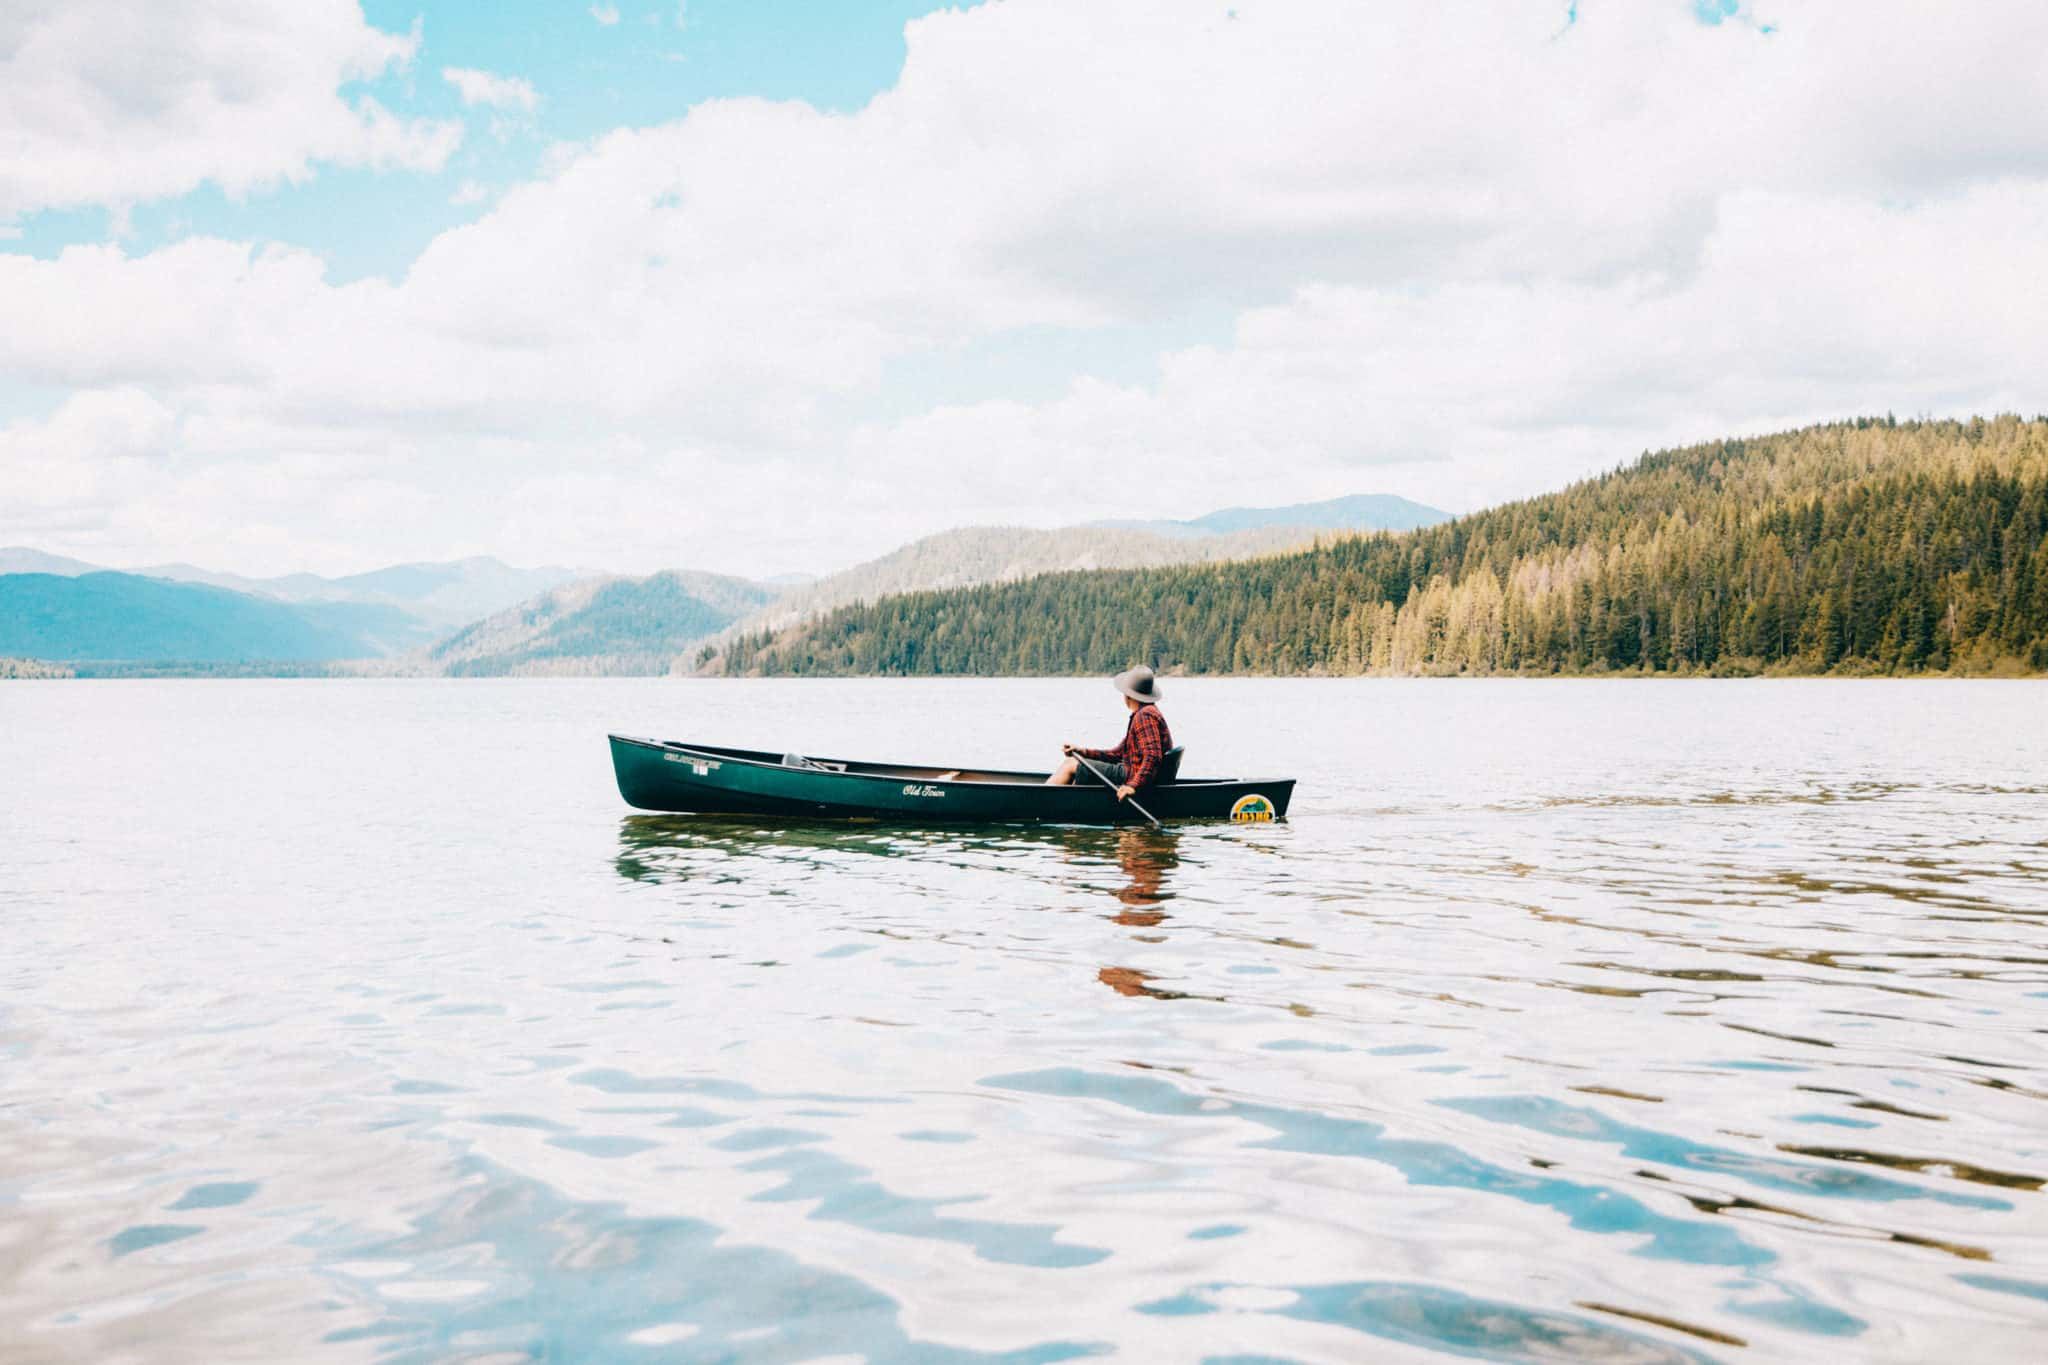 Priest Lake - Northern Idaho. Berty Mandagie in canoe in Upper Priest Lake